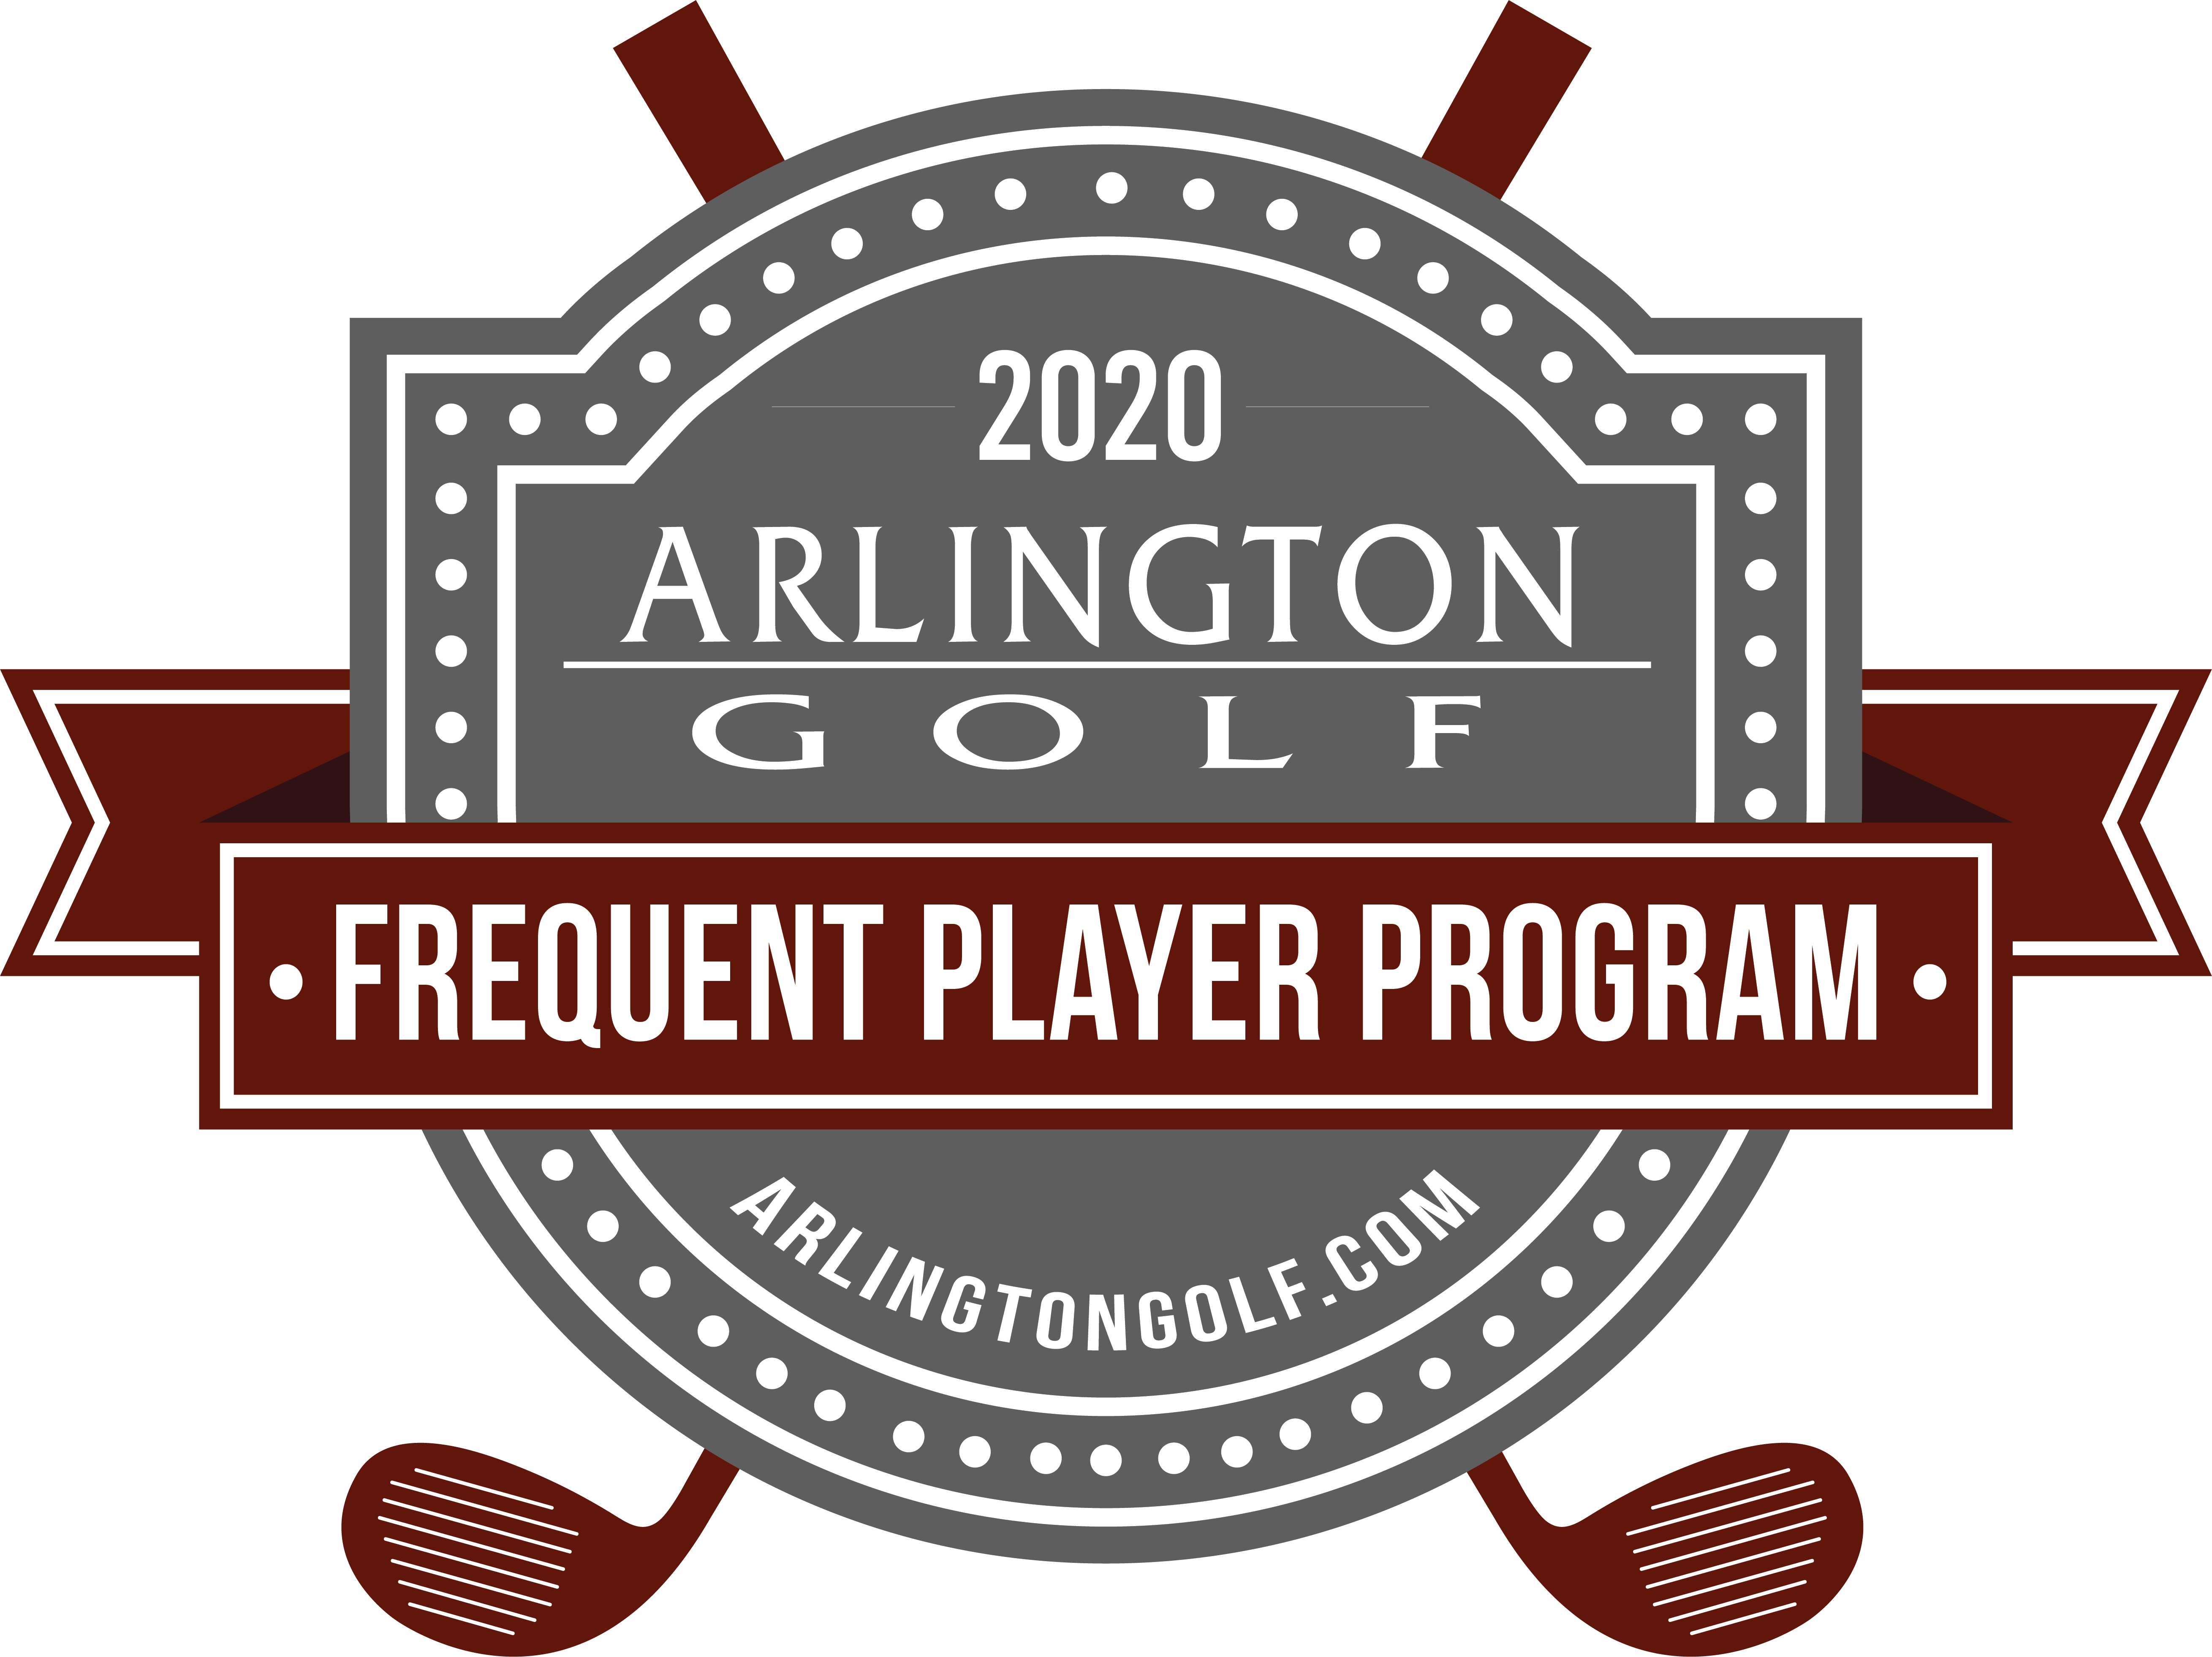 2020 Frequent Player Program Logo